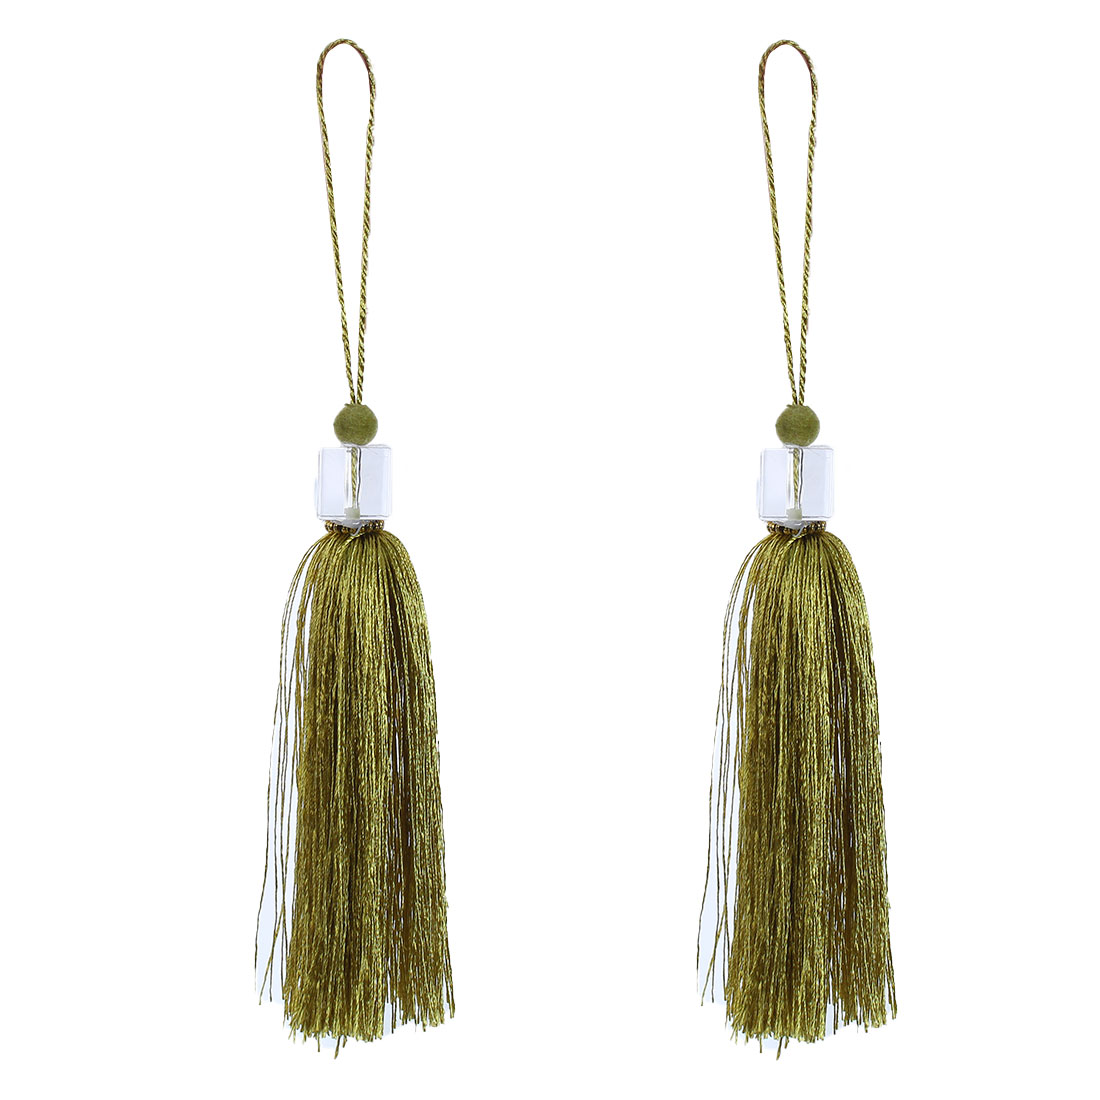 2Pcs Silky Tassels Pendant Sewing DIY Craft Supply Curtain Drapery Deco Olive Color